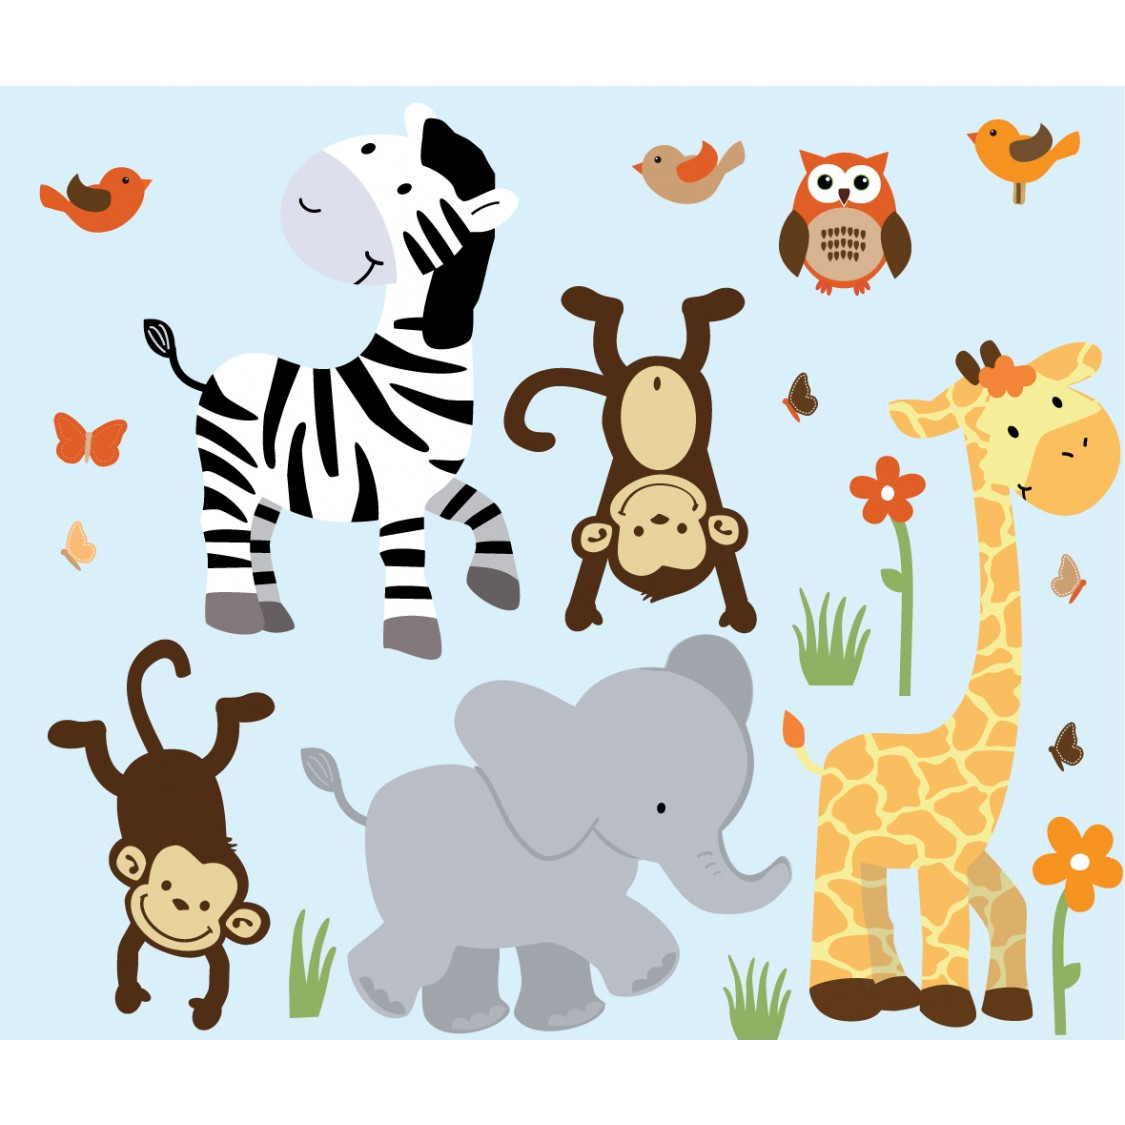 Nursery Jungle Wall Decals With Zebra Wall Decals For Boys Rooms - Nursery wall decals jungle